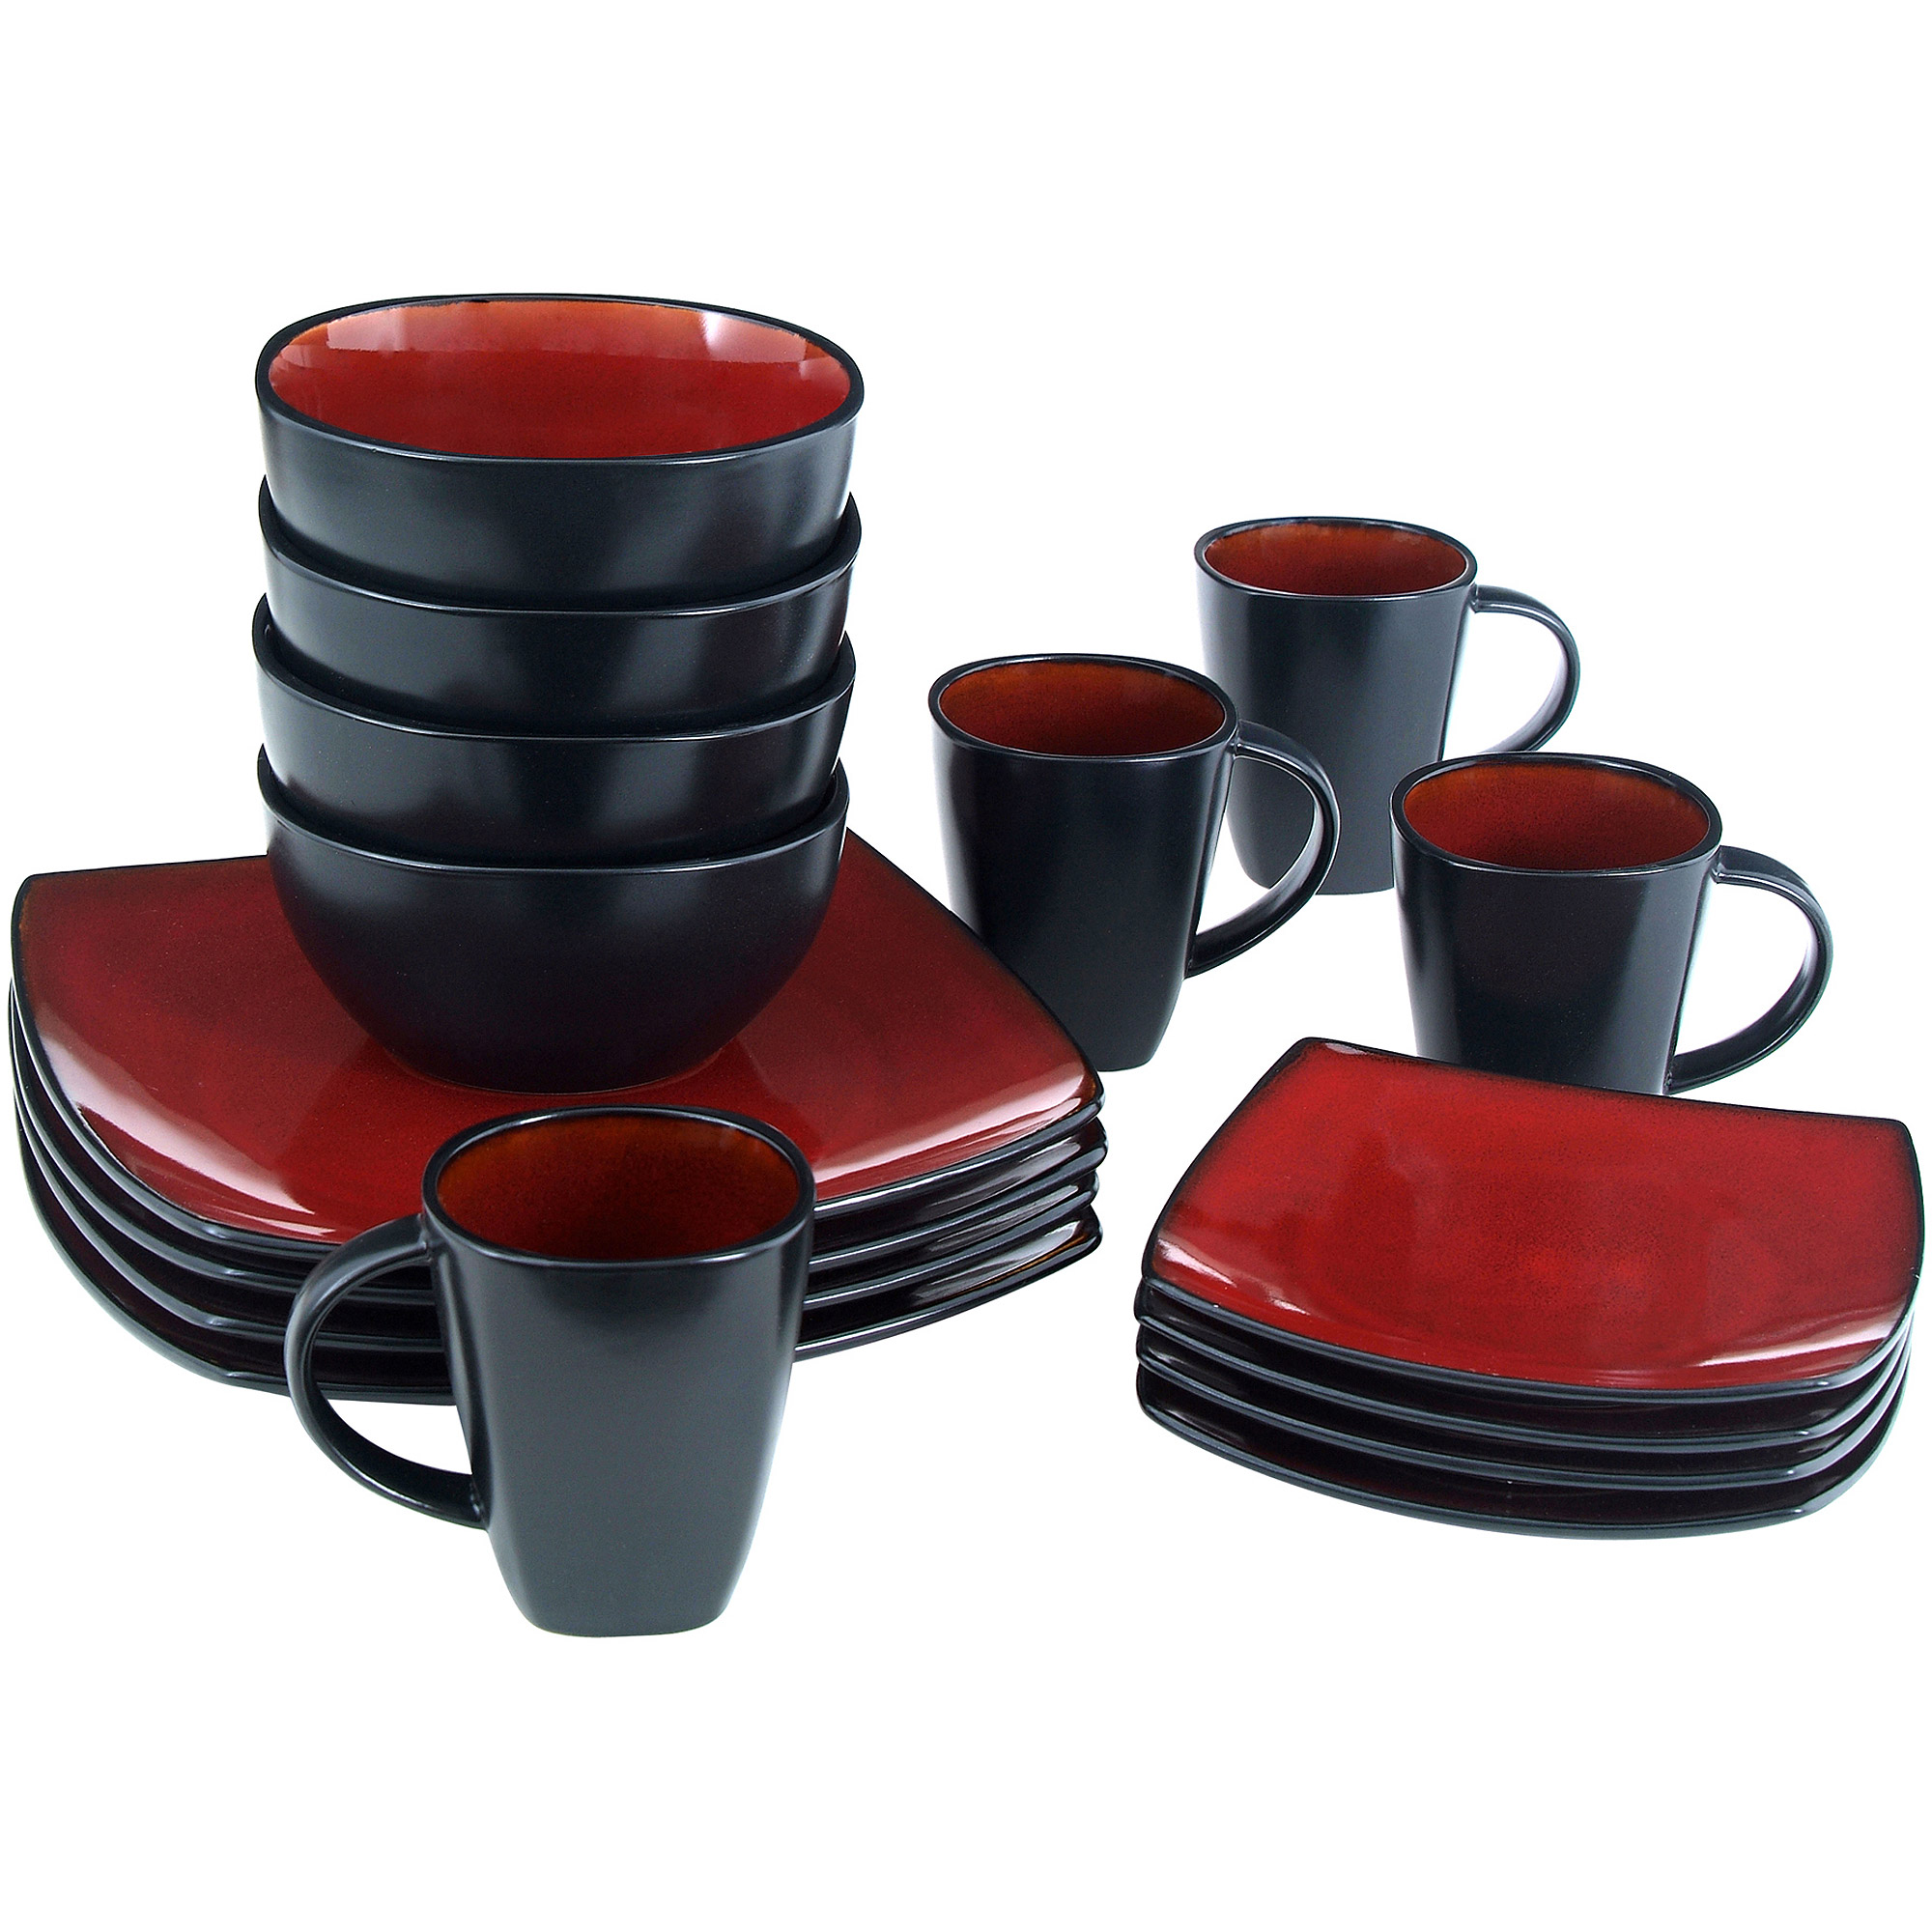 Charmant Better Homes U0026 Gardens 16 Piece Dinnerware Set, Tuscan Red